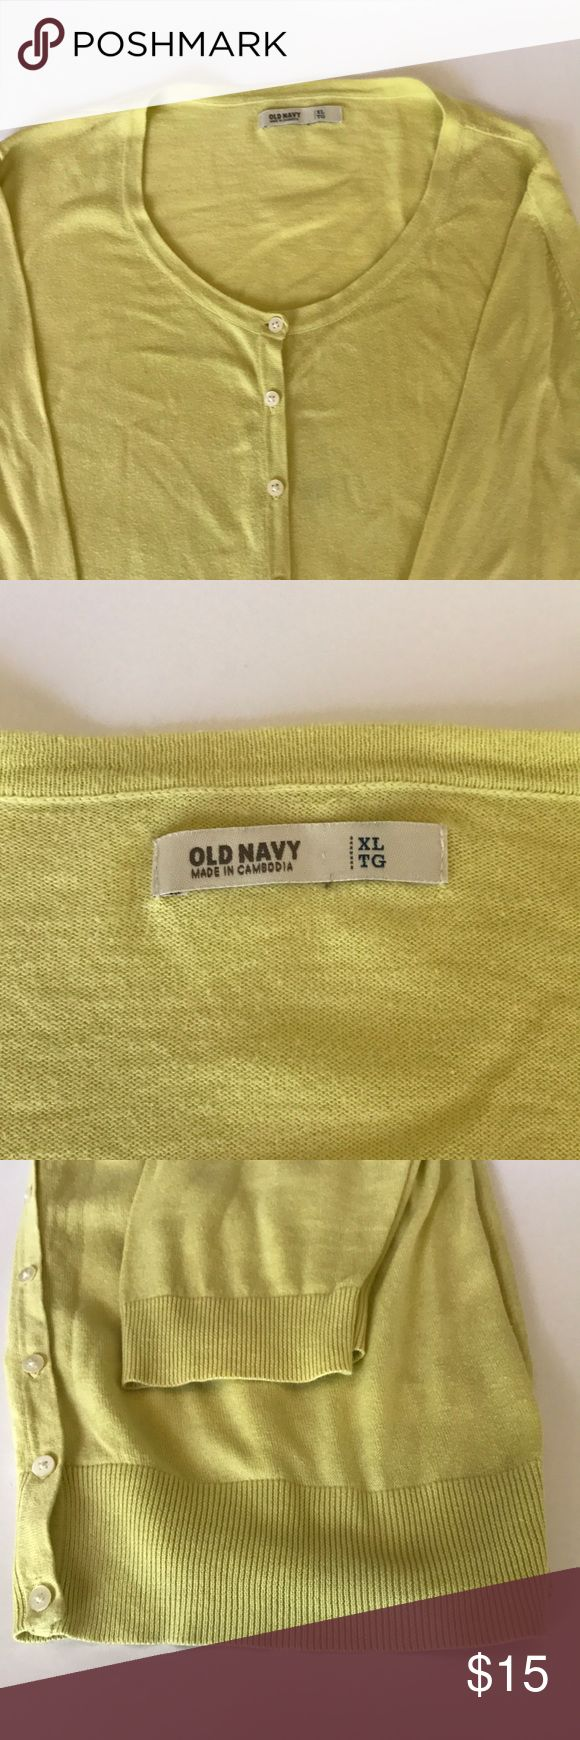 Canary yellow 3/4 sleeves cardigan Yellow cardigan, 3/4 sleeve, light material. Old Navy, size XL. Great condition, no issues. Awesome for this cooler weather coming. Pet and smoke free home Merona Sweaters Cardigans